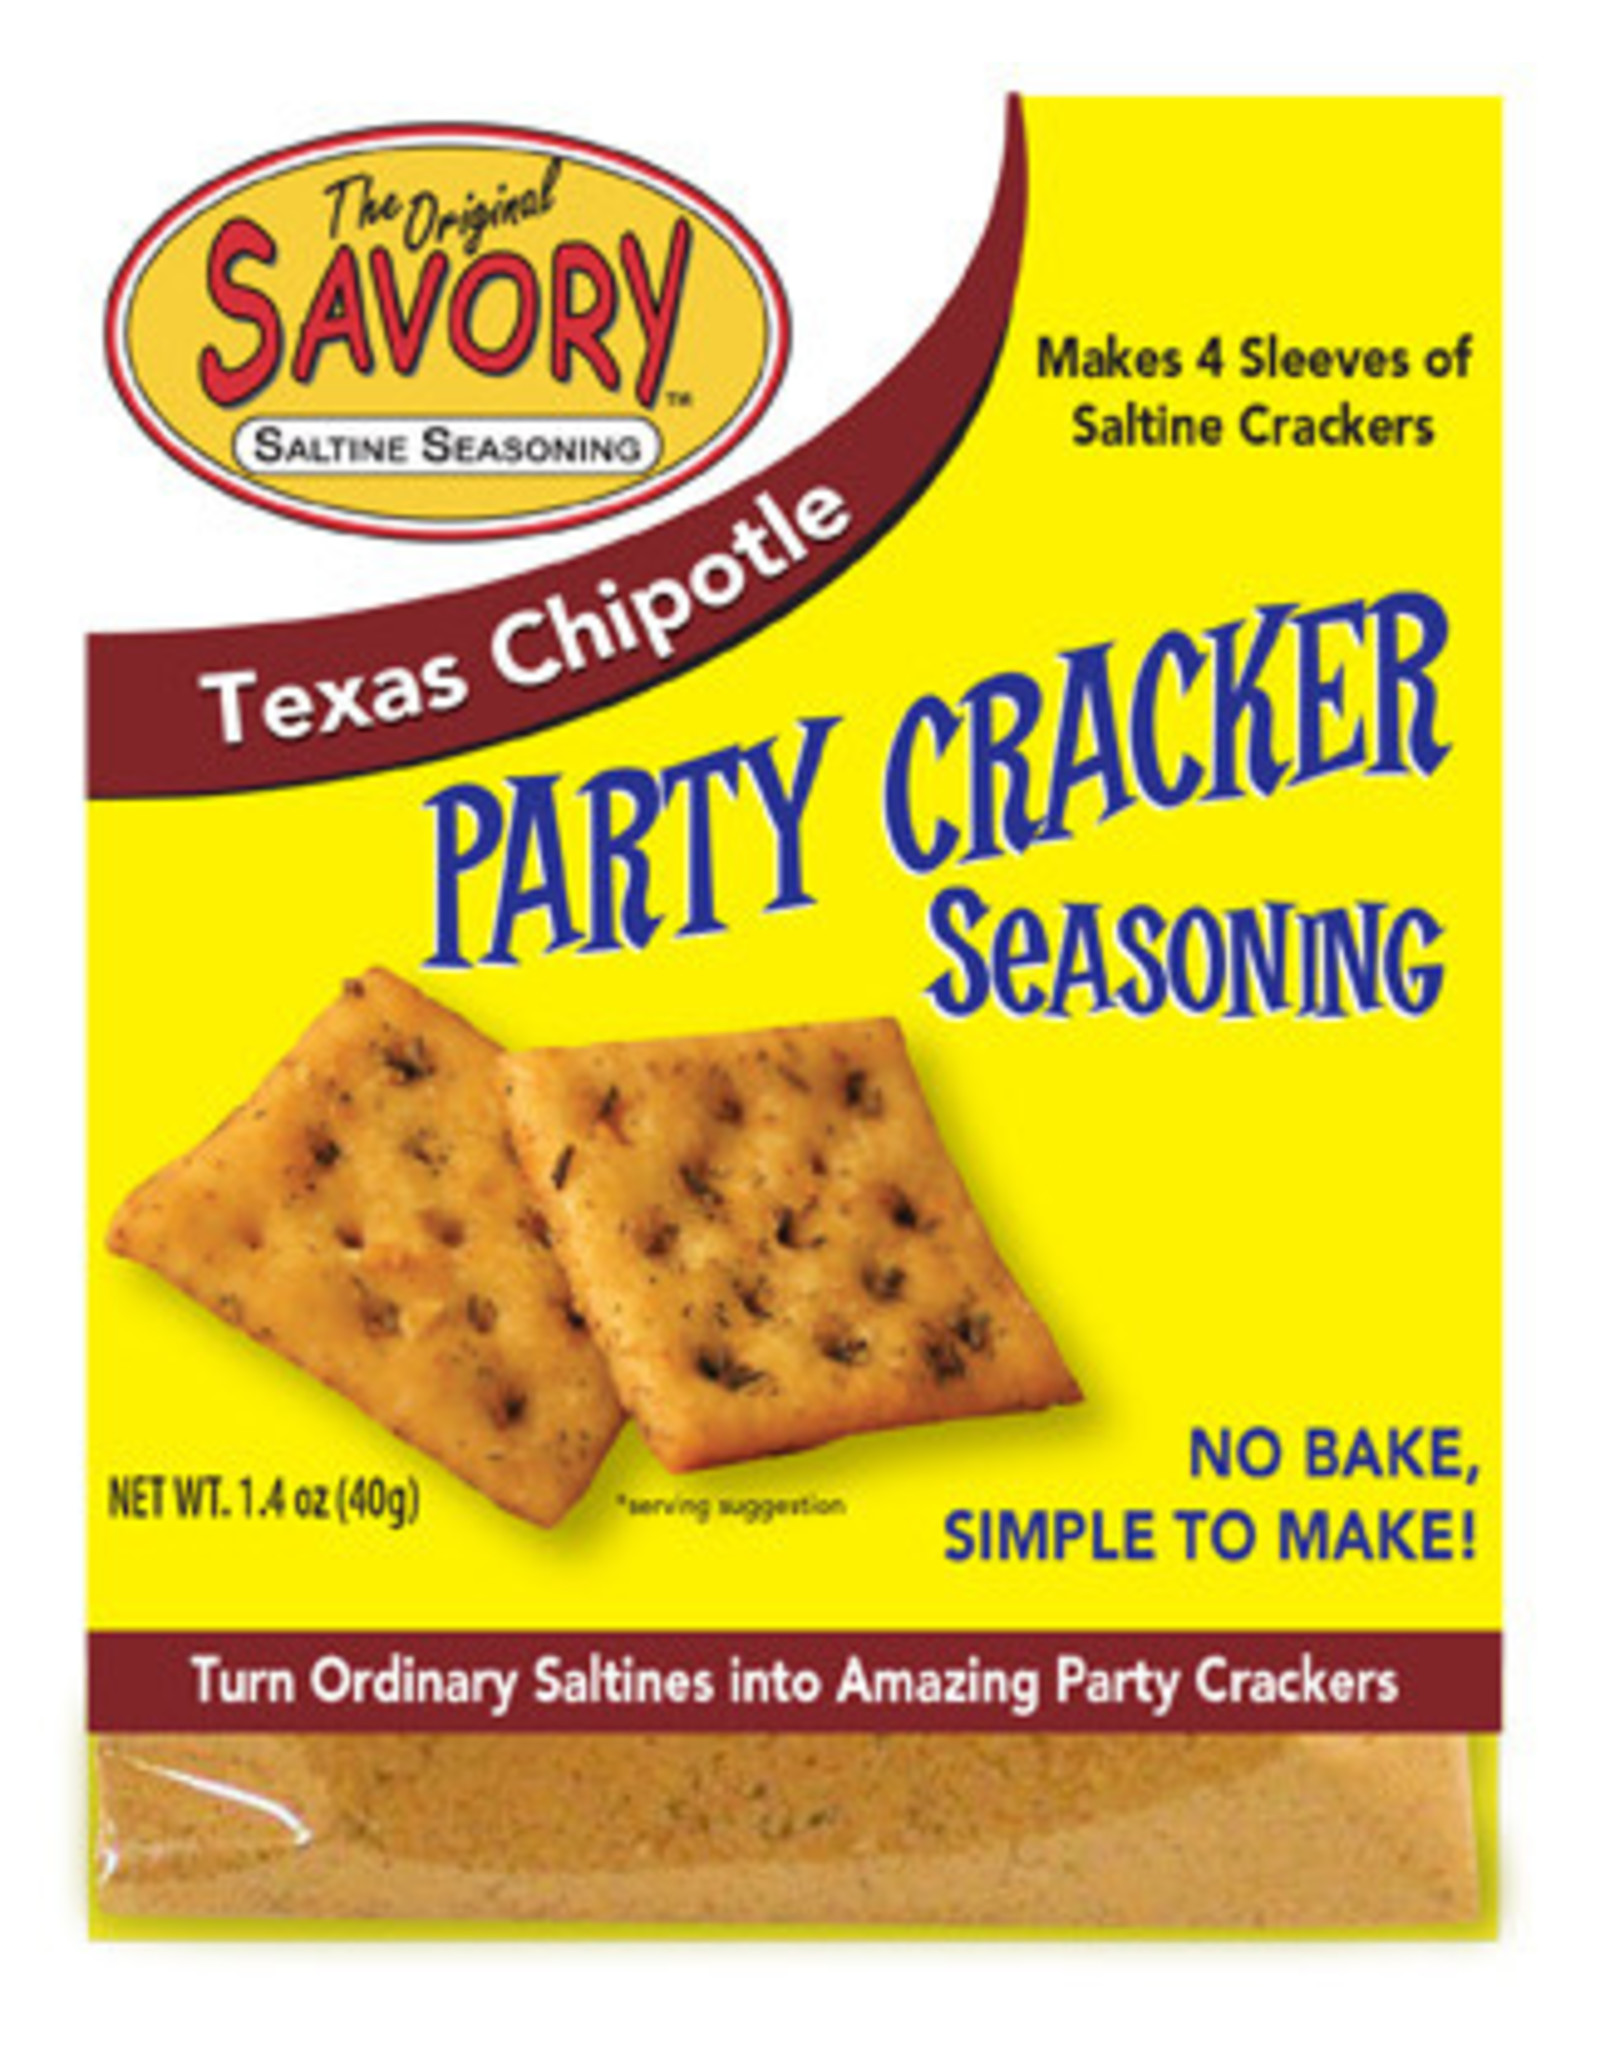 Savory Saltine Seasoning, Chipotle, 1.4oz